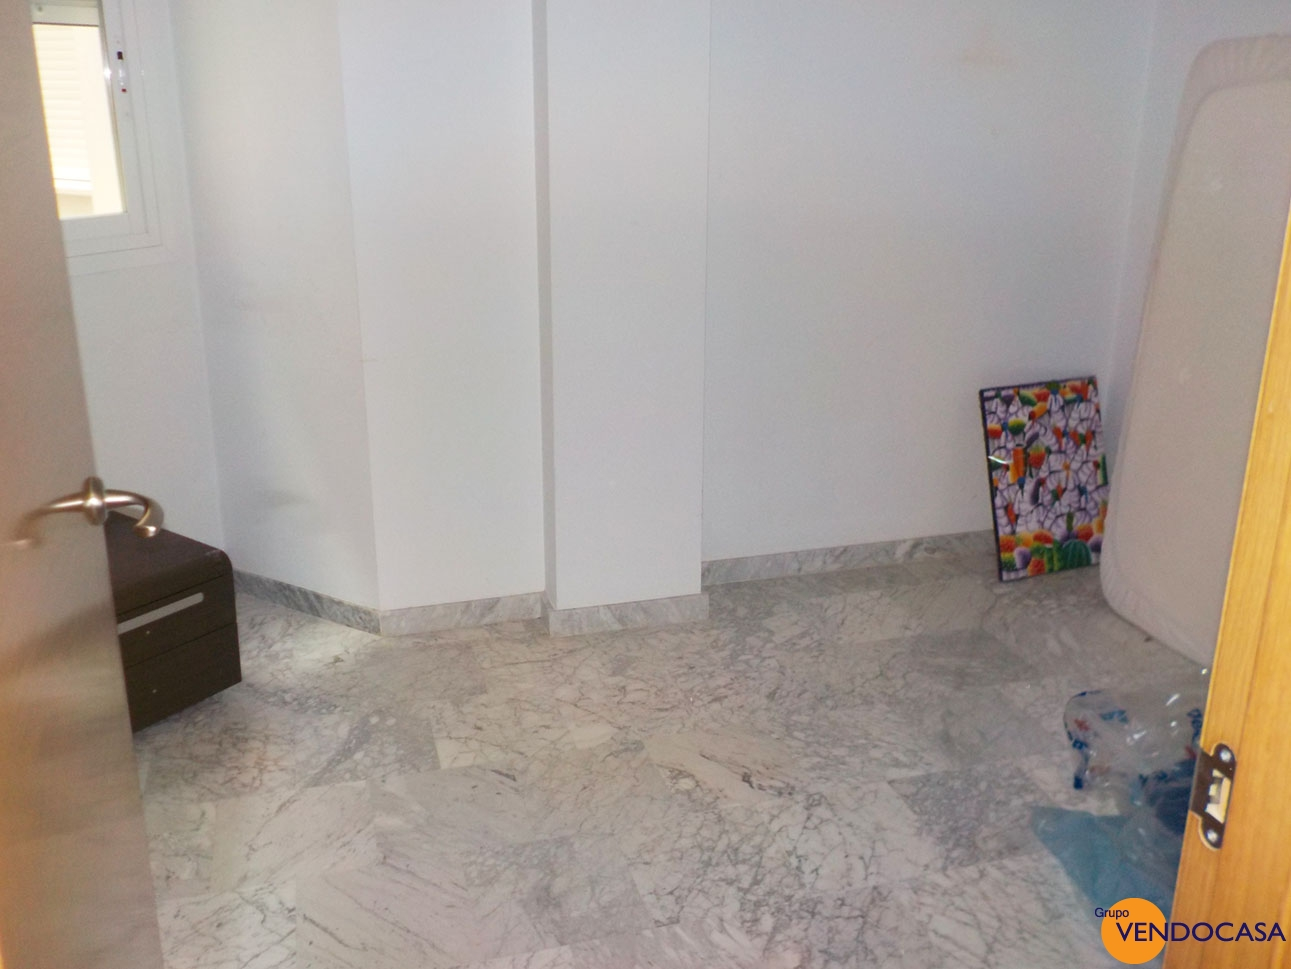 NICE APARTMENT - GOOD INVESTMENT